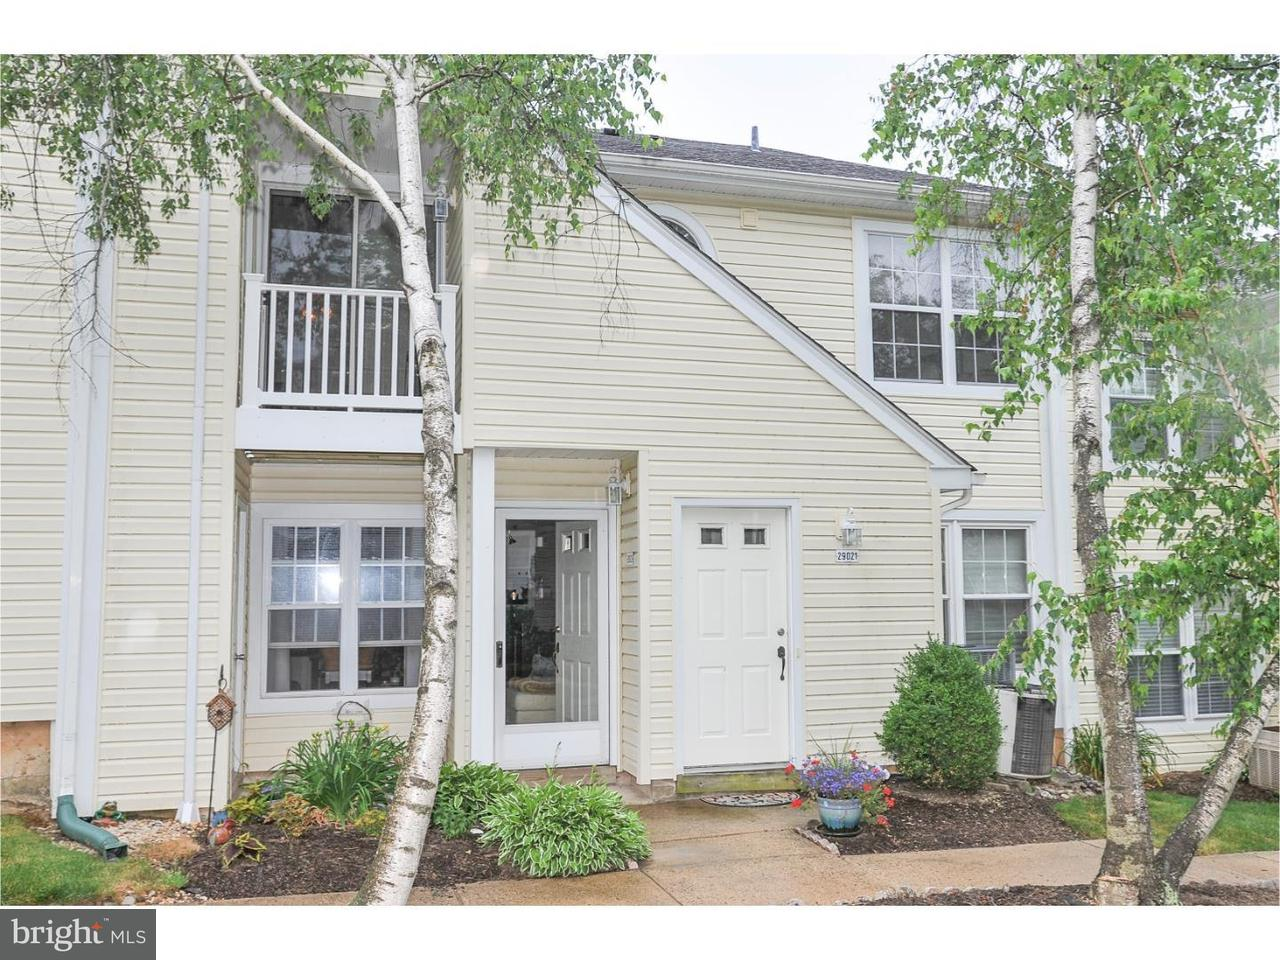 Single Family Home for Rent at 29021 ATKINSON Place Southampton, Pennsylvania 18966 United States